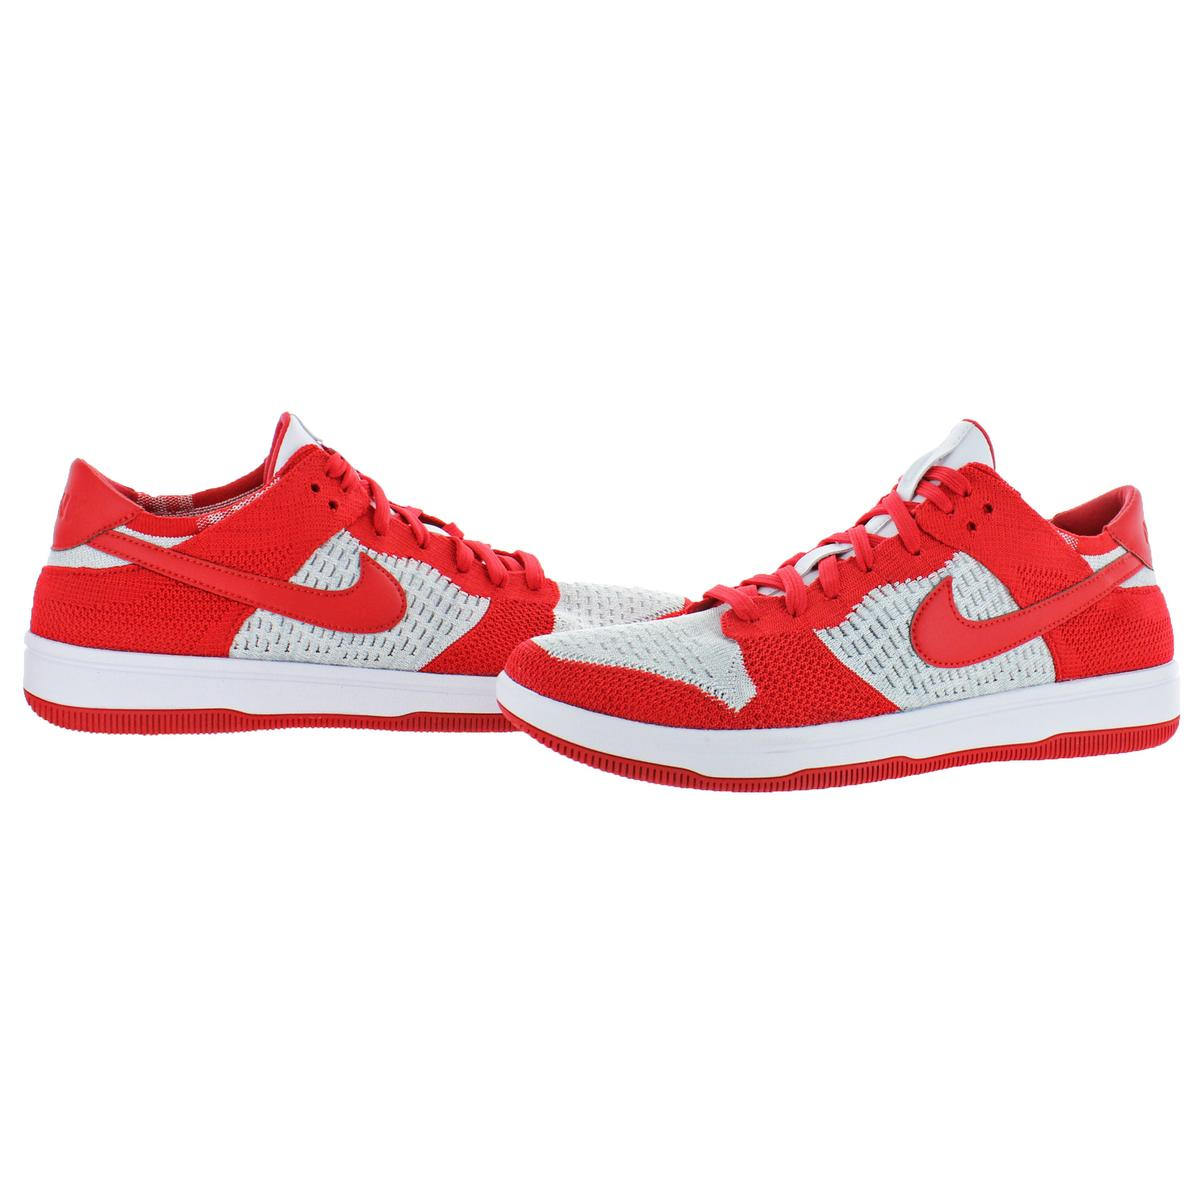 Nike Nike Nike Mens Dunk Flyknit Lightweight Low Top Casual shoes Sneakers BHFO 7072 b7bfab